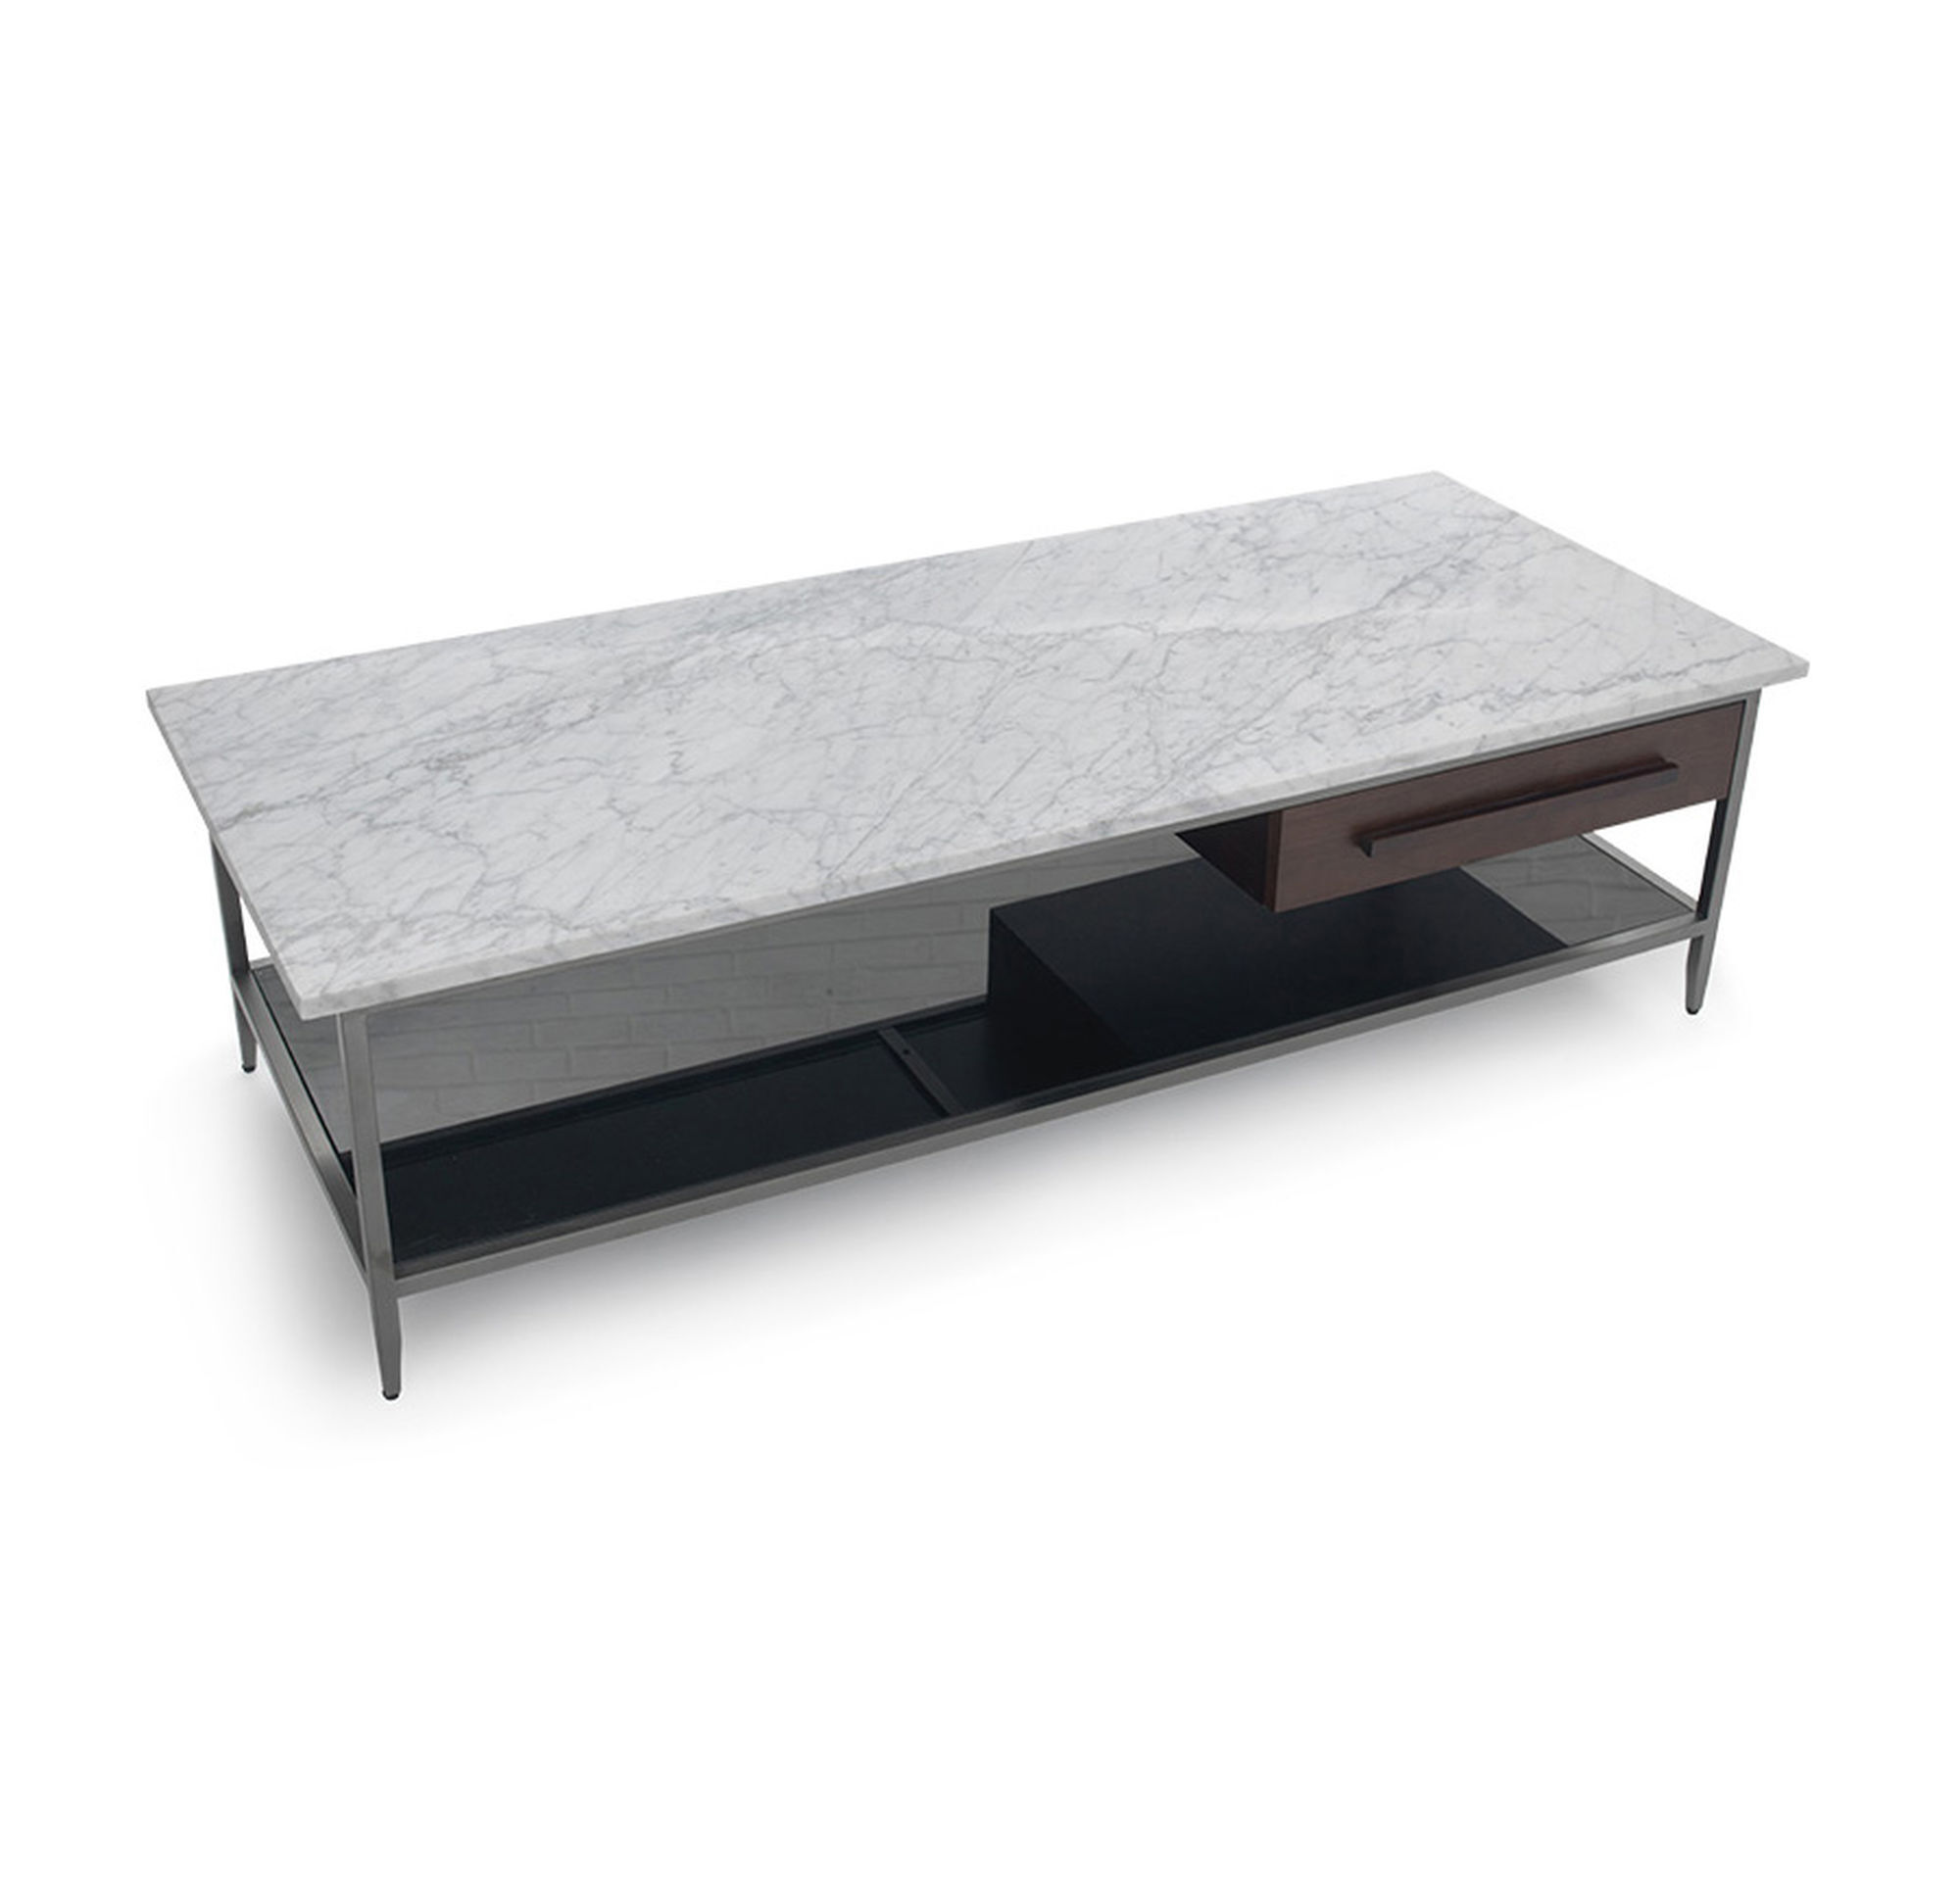 Buy White Marble And Black Metal Coffee Table From Fusion: TRIBECA RECTANGLE COCKTAIL TABLE